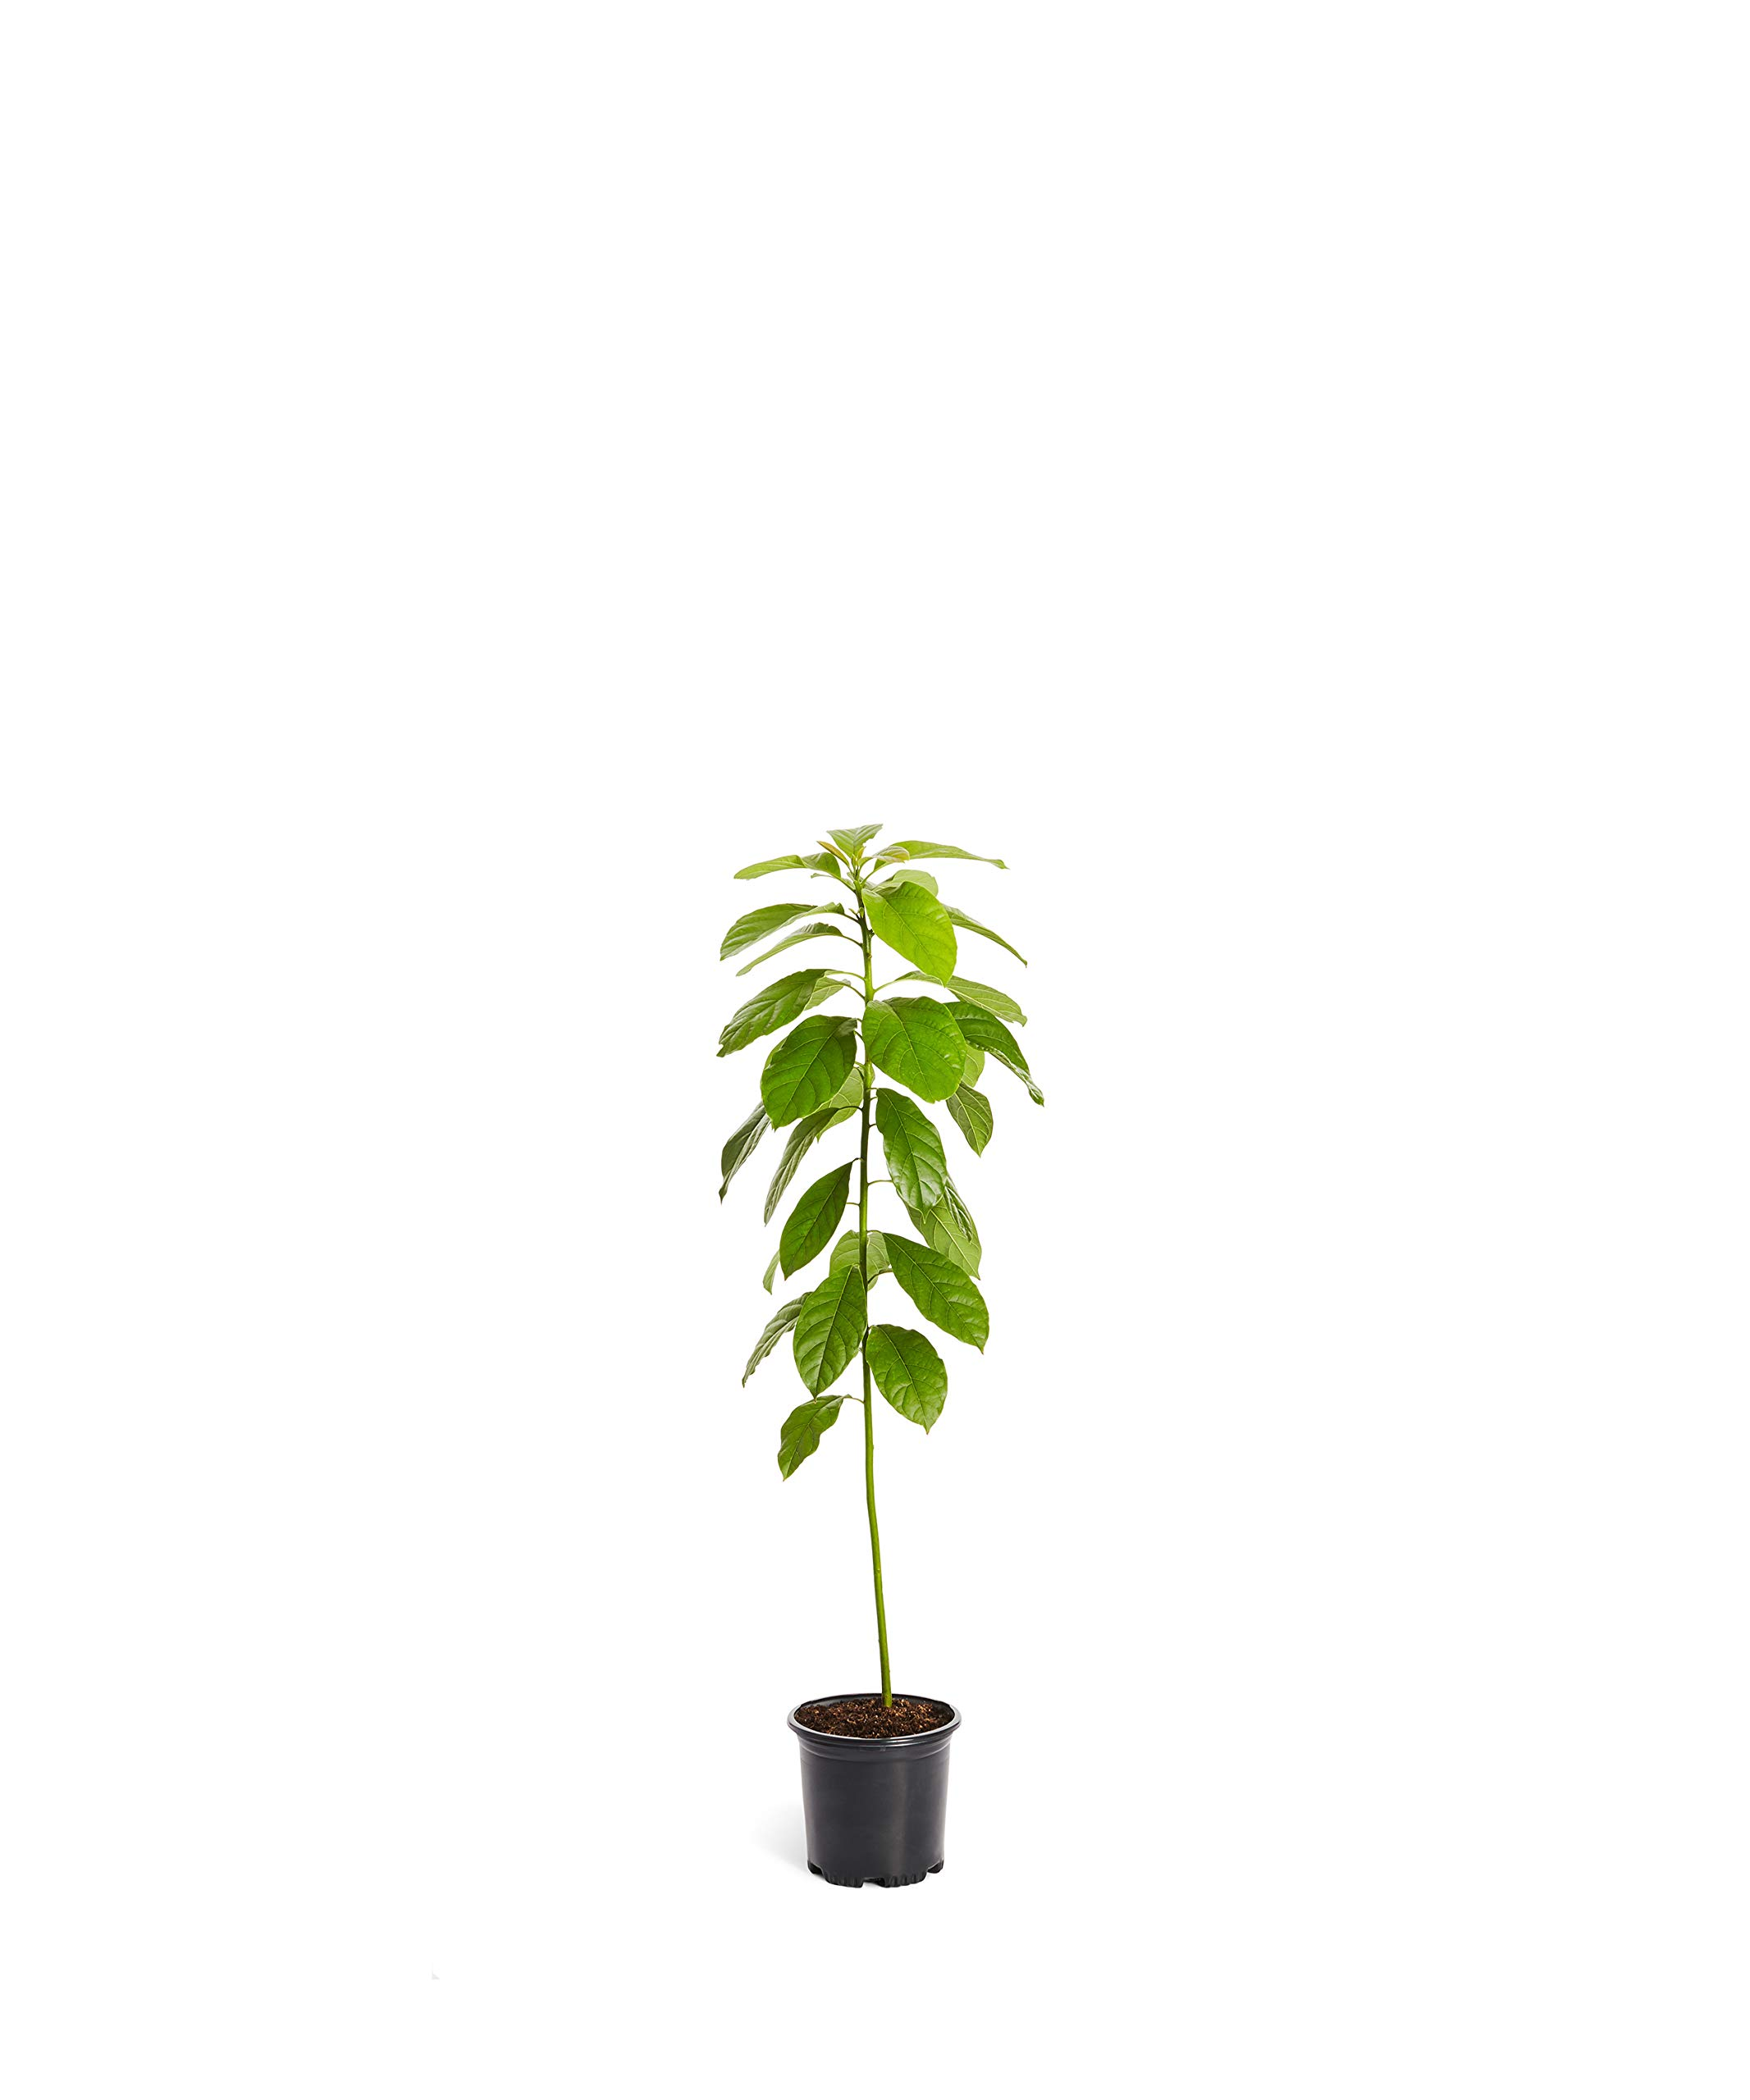 HASS Avocado Tree - Large Indoor/Outdoor Avocado Trees, Ready to give Fruit - Get Delicious Avocado Fruit Year Round from This Patio Fruit Tree - 1-2 ft. by Brighter Blooms